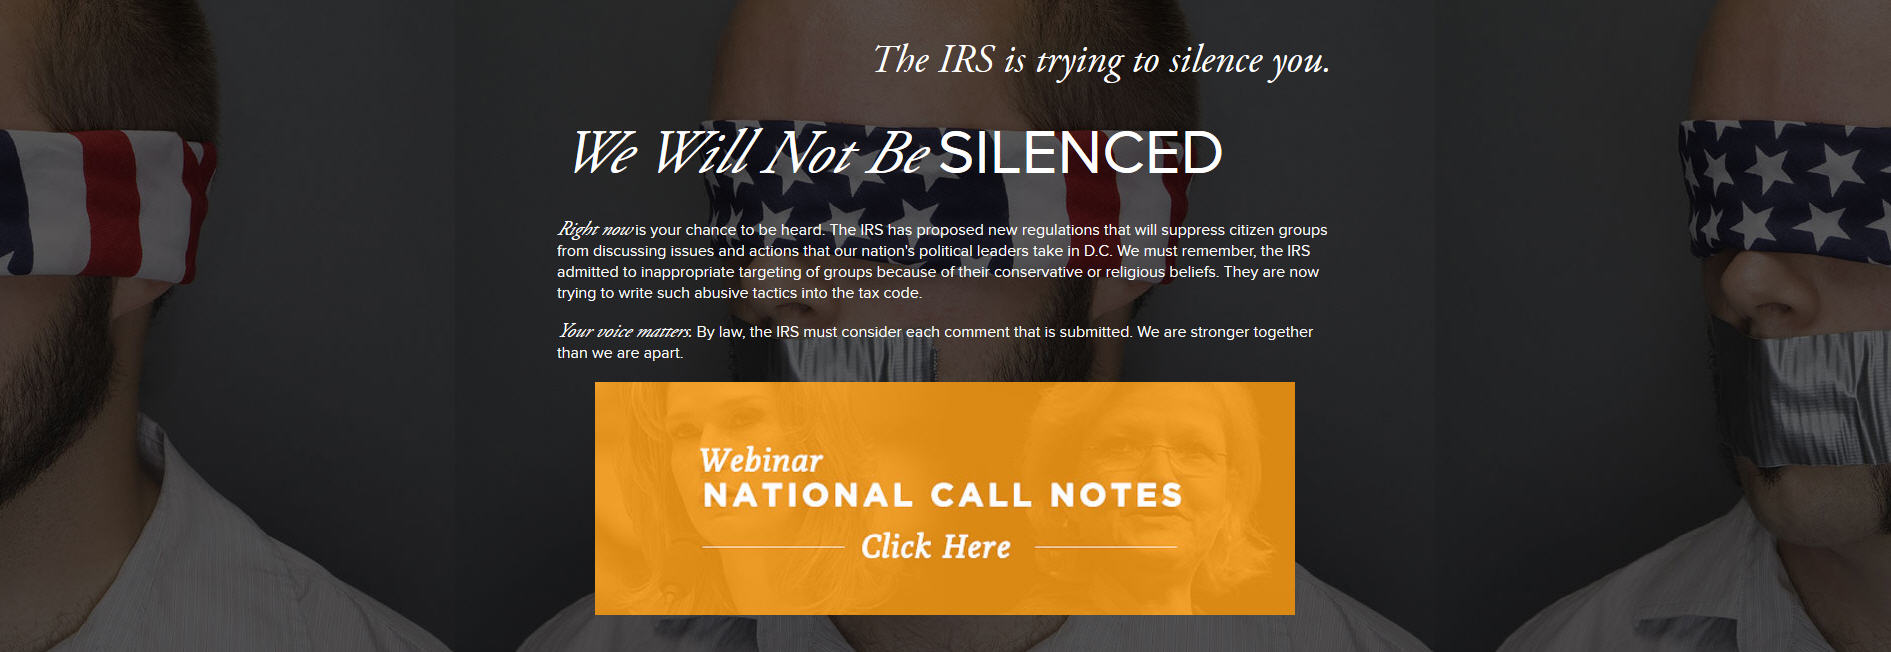 IRS - We Will Not Be Silenced